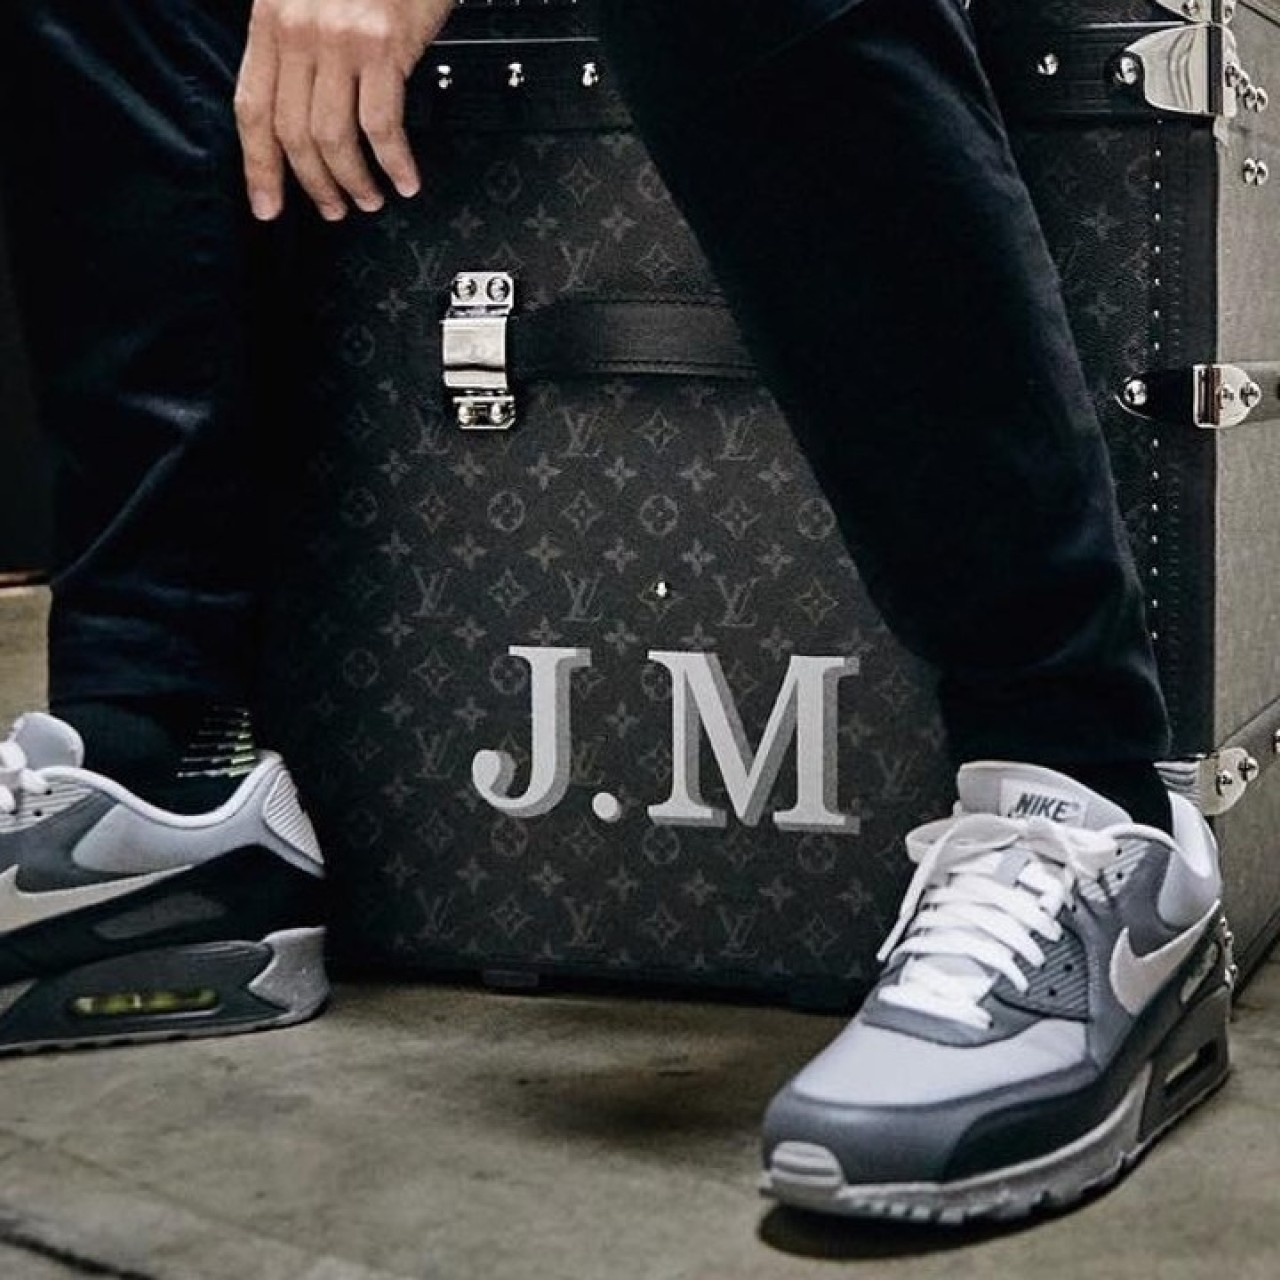 53c0f5eb34681 10 sneaker drops – including collabs with Pharell and John Mayer ...